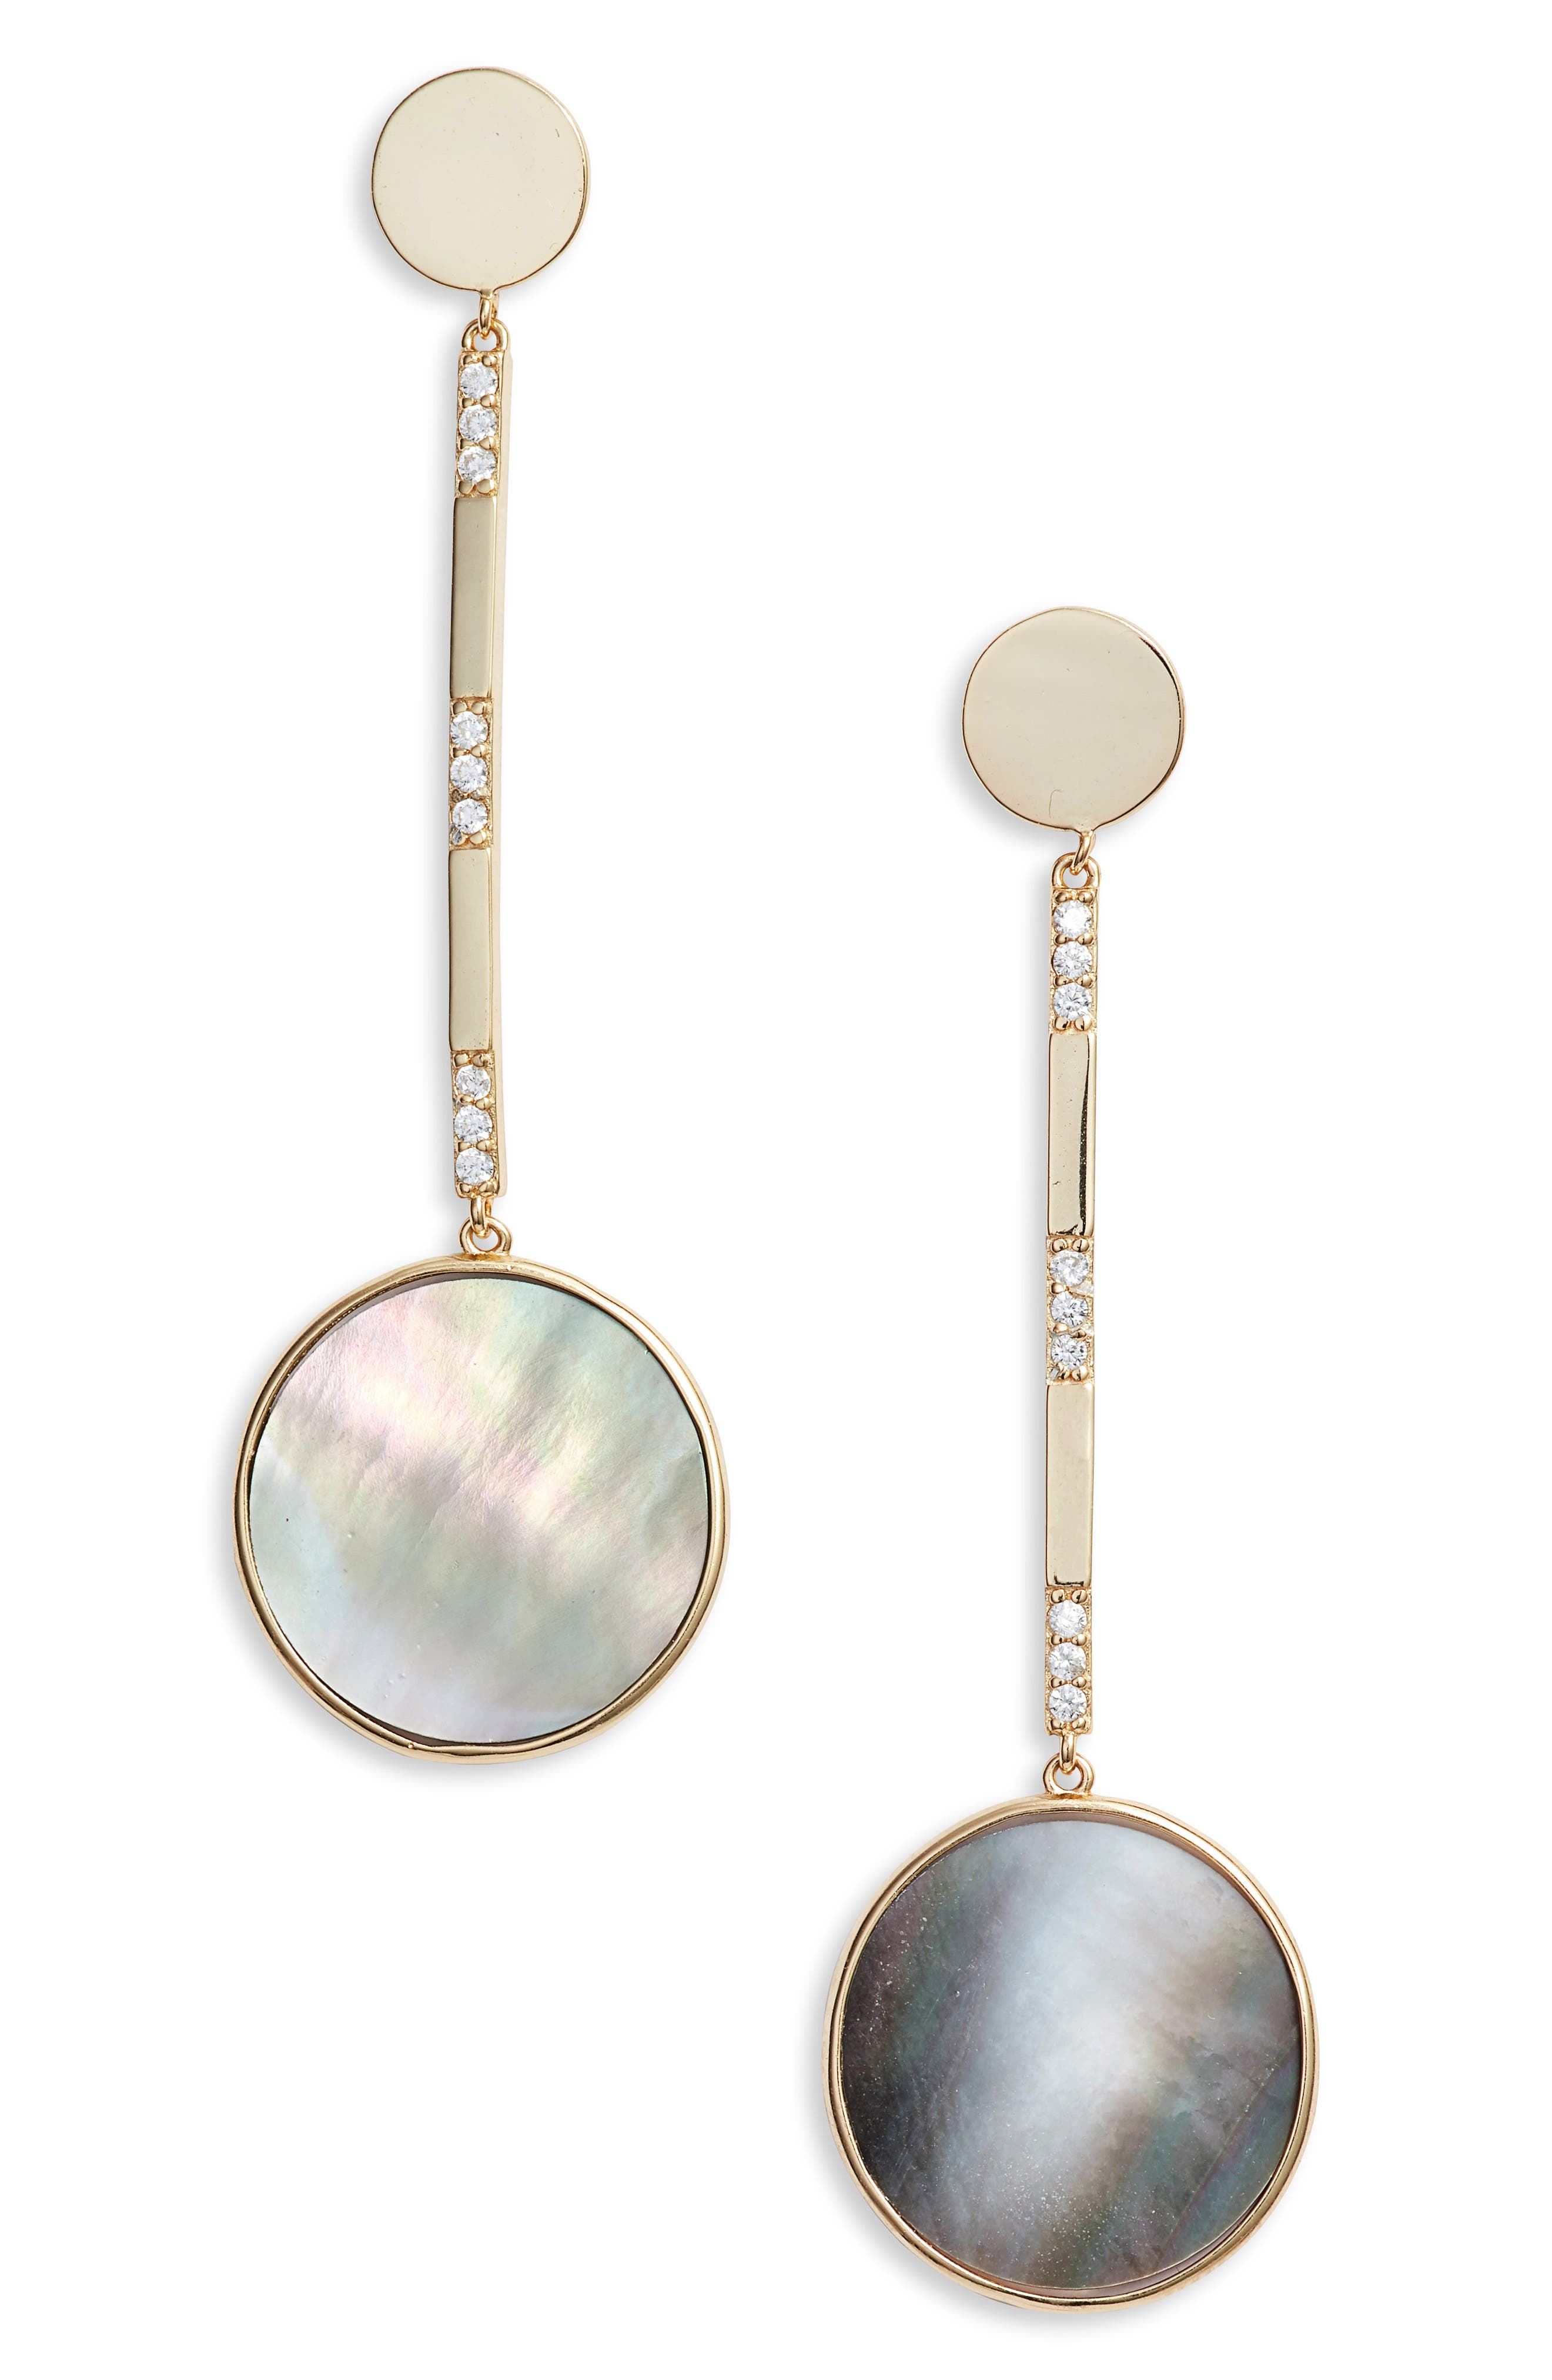 Mother of Pearl Circle Drop Earrings,                             Main thumbnail 1, color,                             GOLD